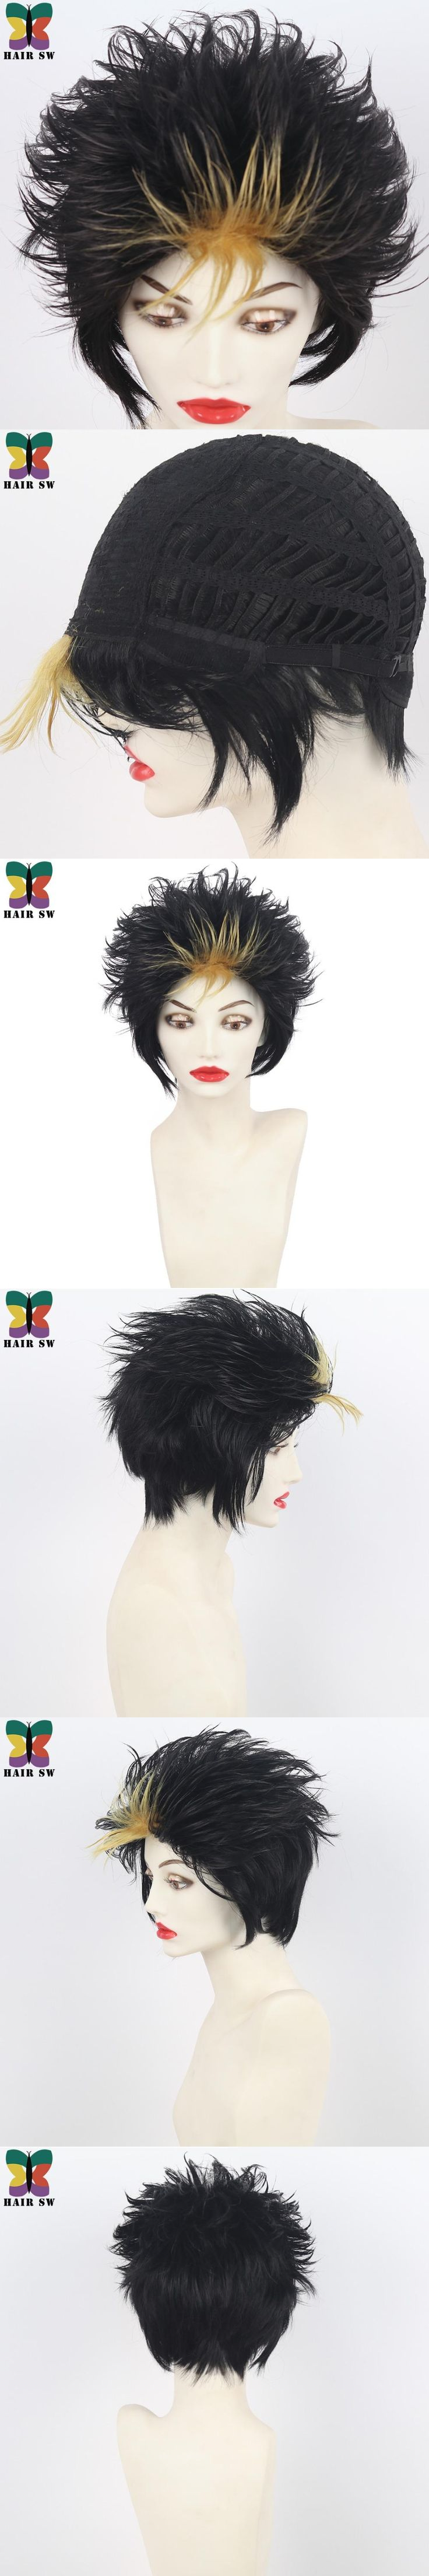 HAIR SW Short High School Volleyball Club Cosplay Wig Synthetic Yuu Layer Black Gold Highlights Costume Party Halloween Wig